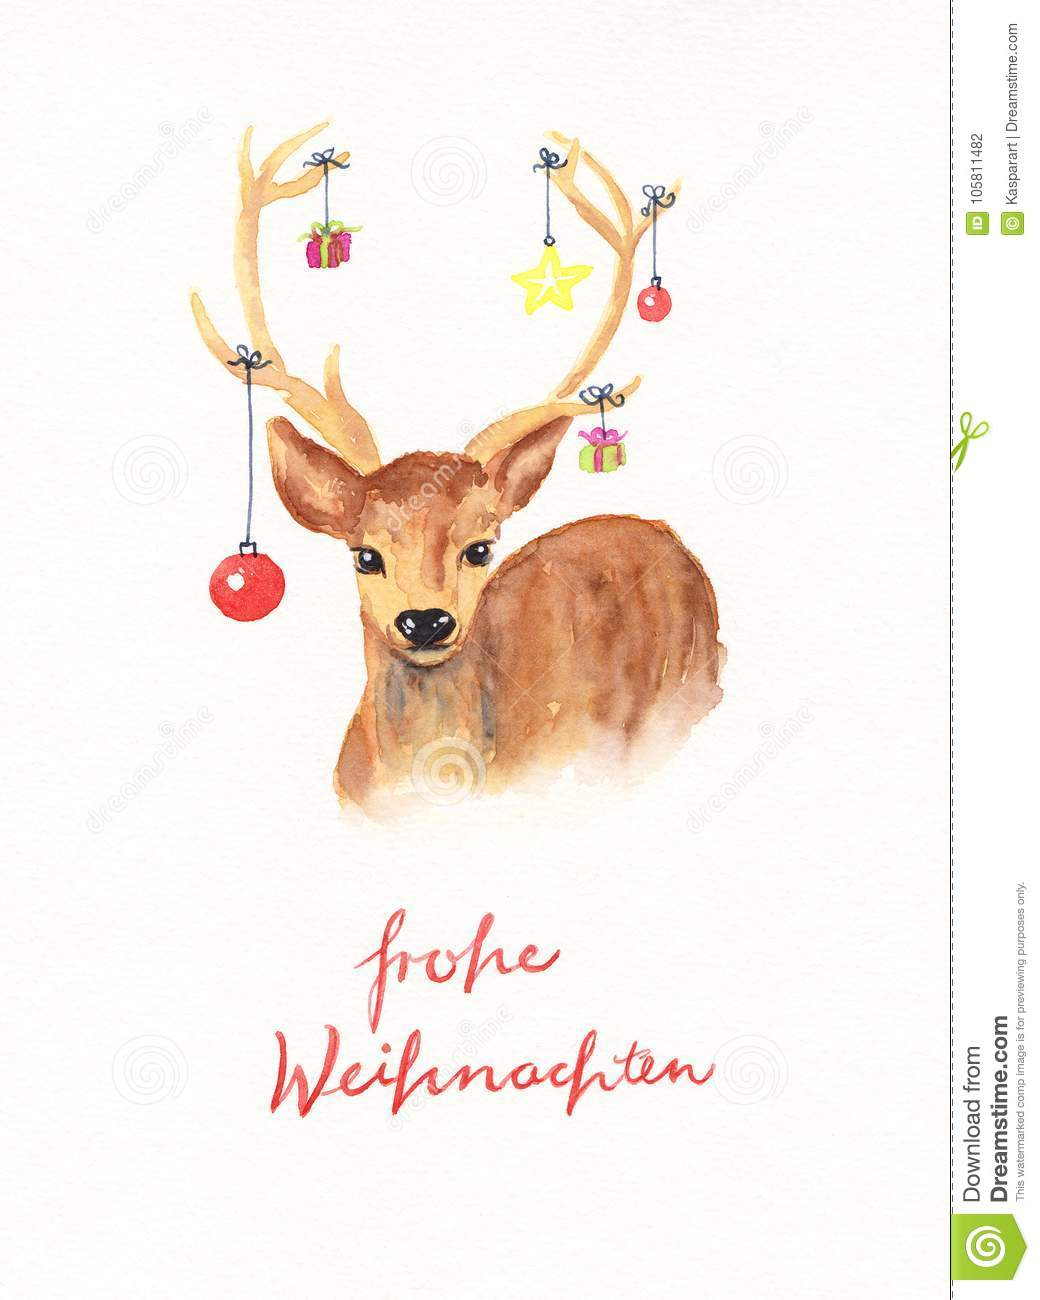 Text Frohe Weihnachten.Deer With Christmas Decoration Watercolor Painting With